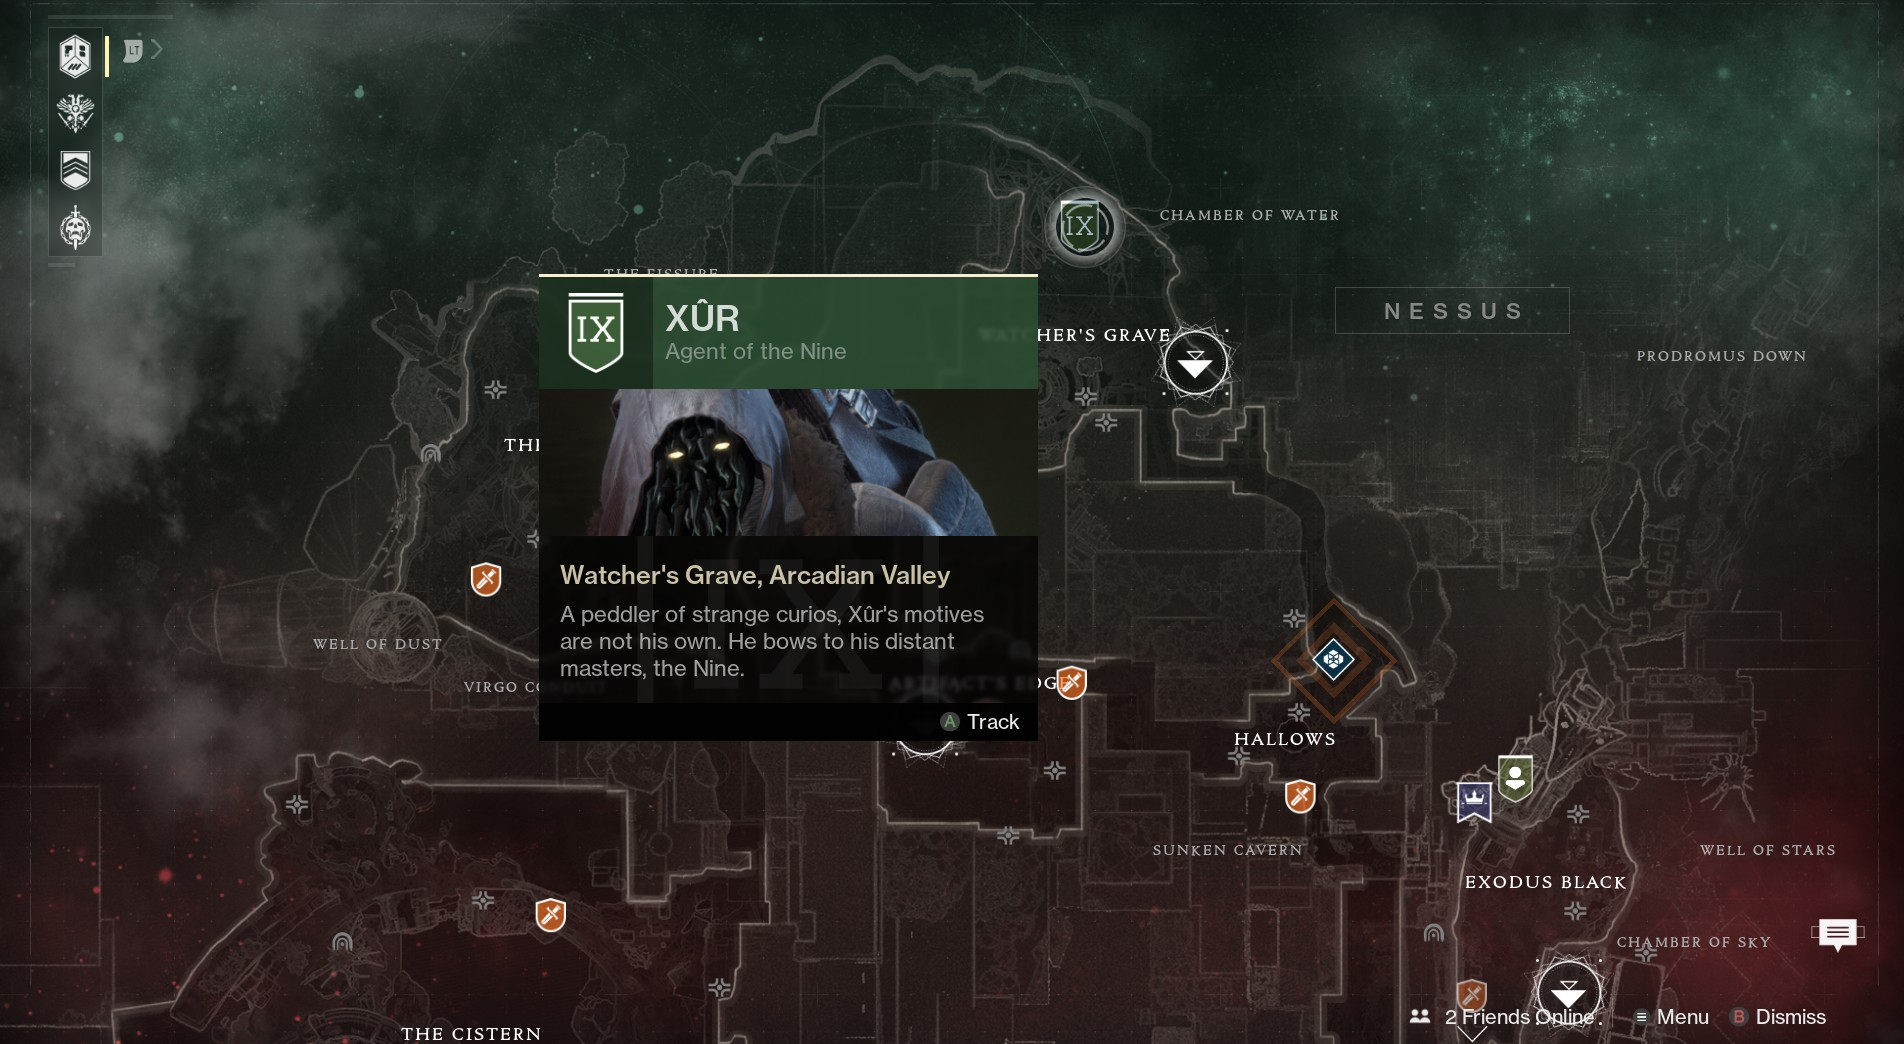 Image showing the location of Xur on Nessus.